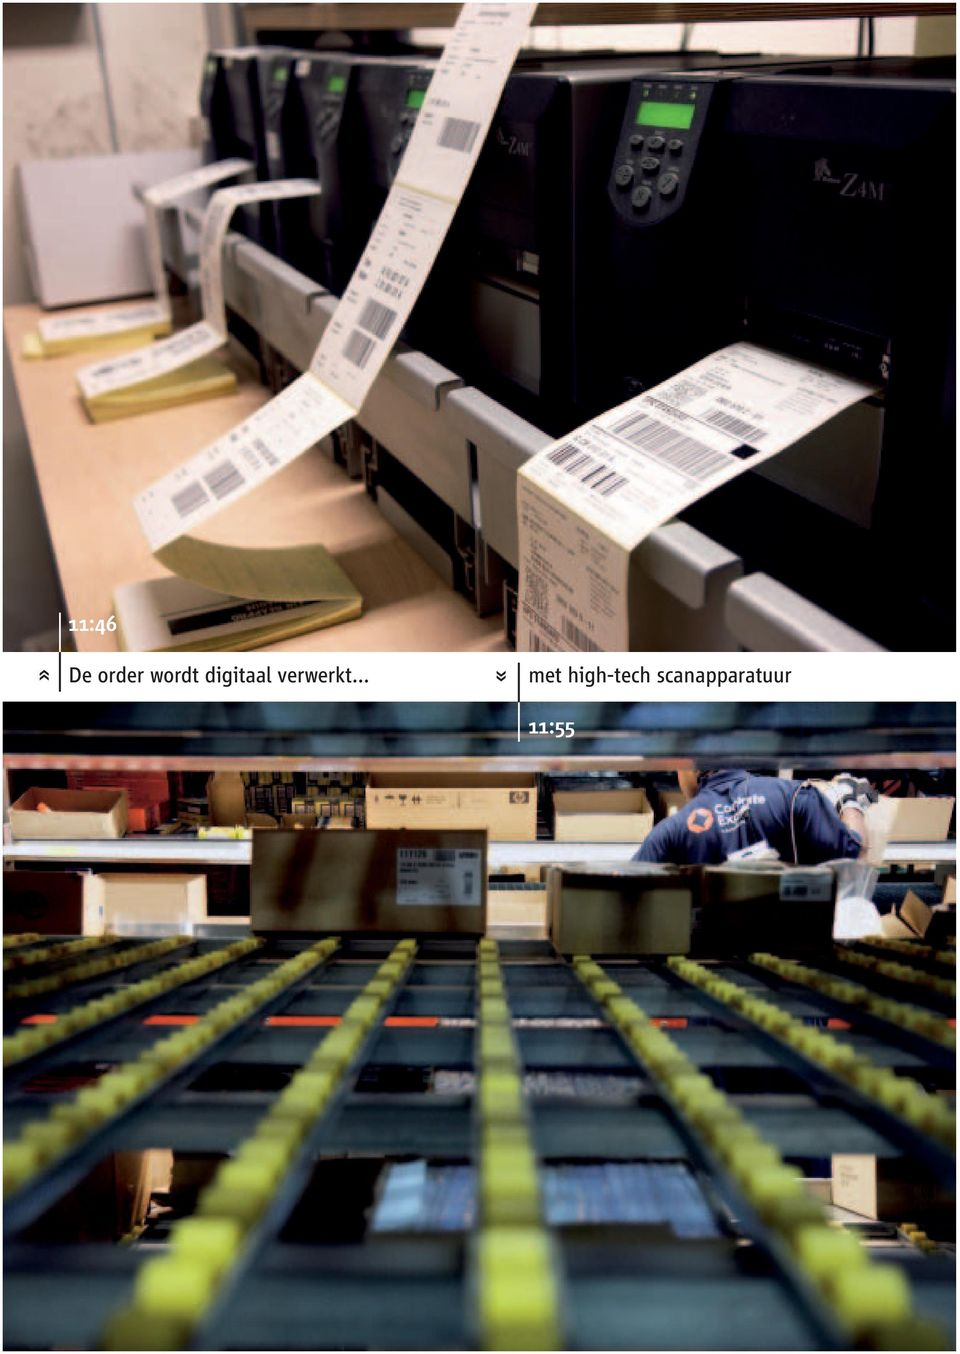 .. met high-tech